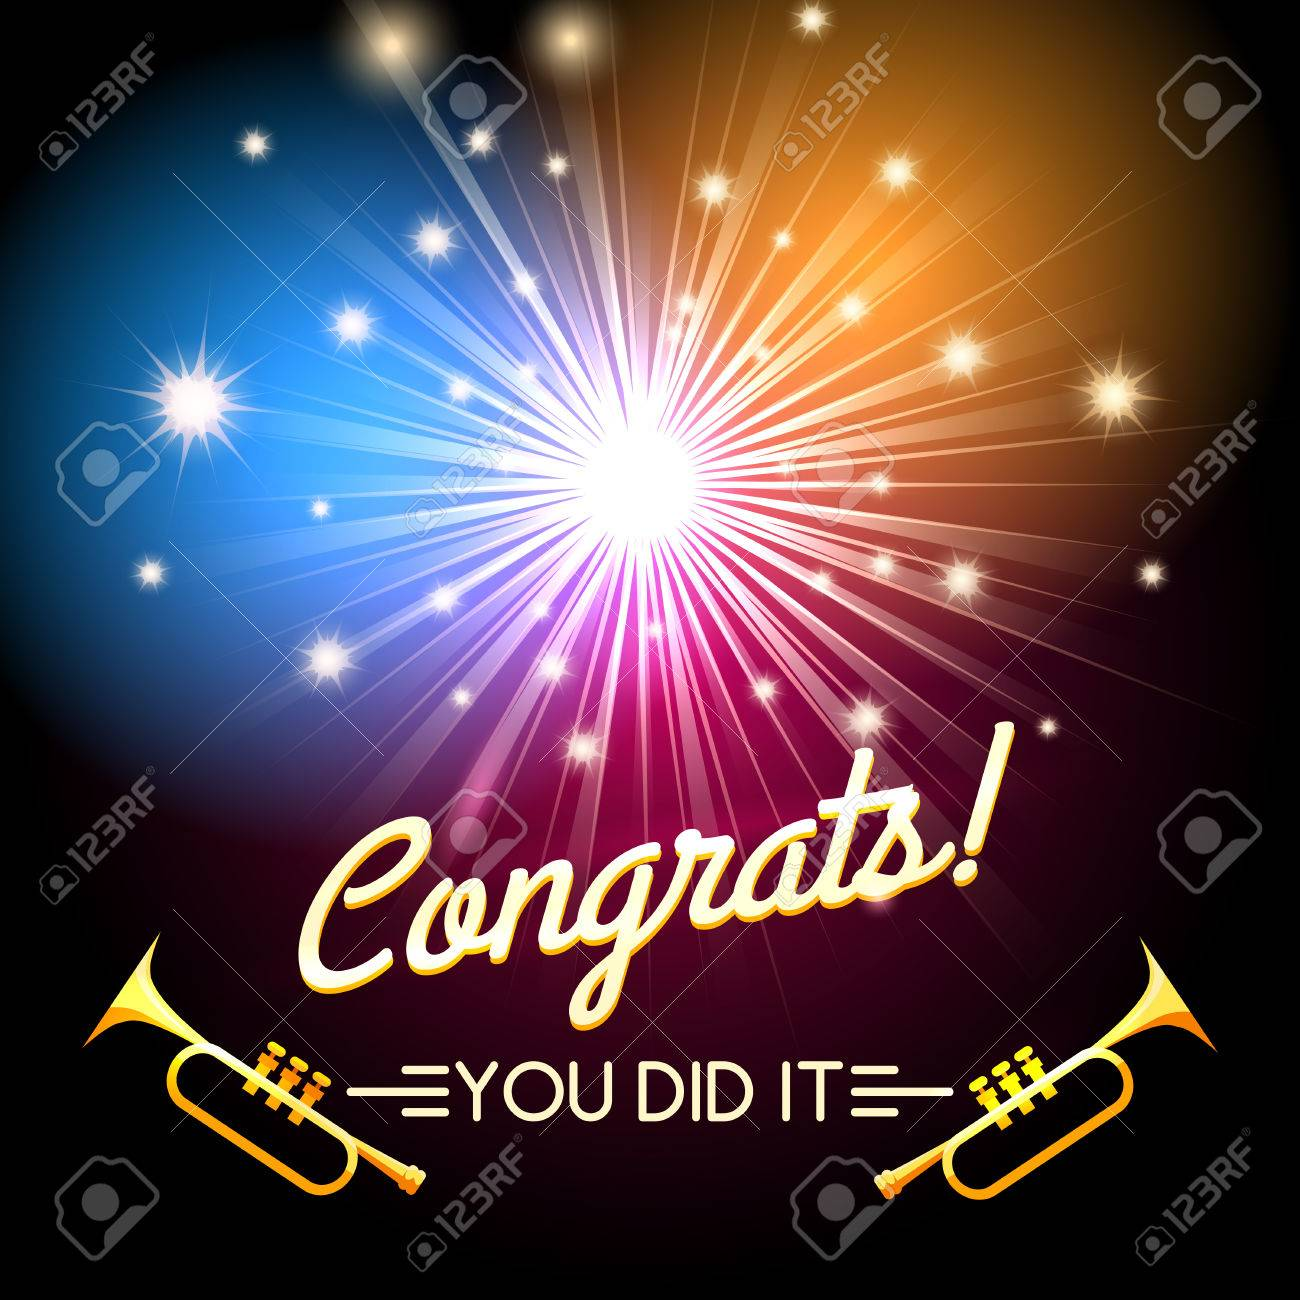 congratulations card with firework and trumpets free font used